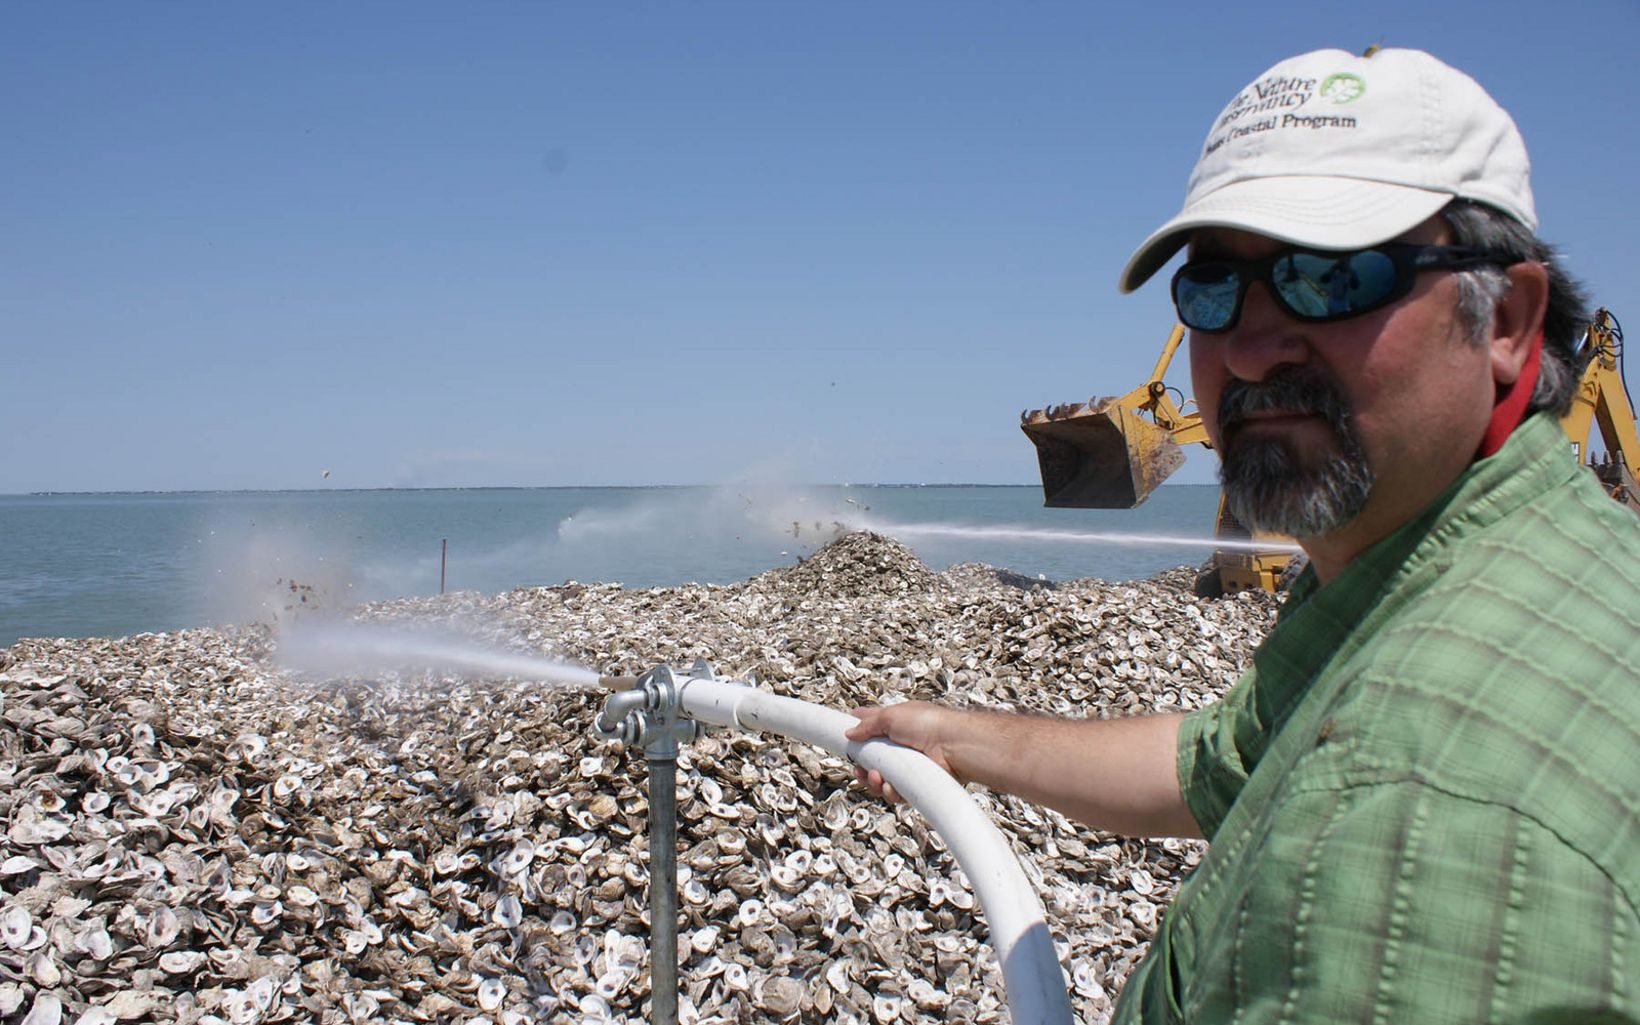 (LIMITED INTERNAL RIGHTS) April 2008 - Corpus Christi, Texas. Mark Dumesnil (Nature Conservancy upper Gulf Coast program manager) blows oyster shells into Copano Bay with a fire hose to restore oyster reefs for oysters and fish. Photo credit: © Mark Gagliano